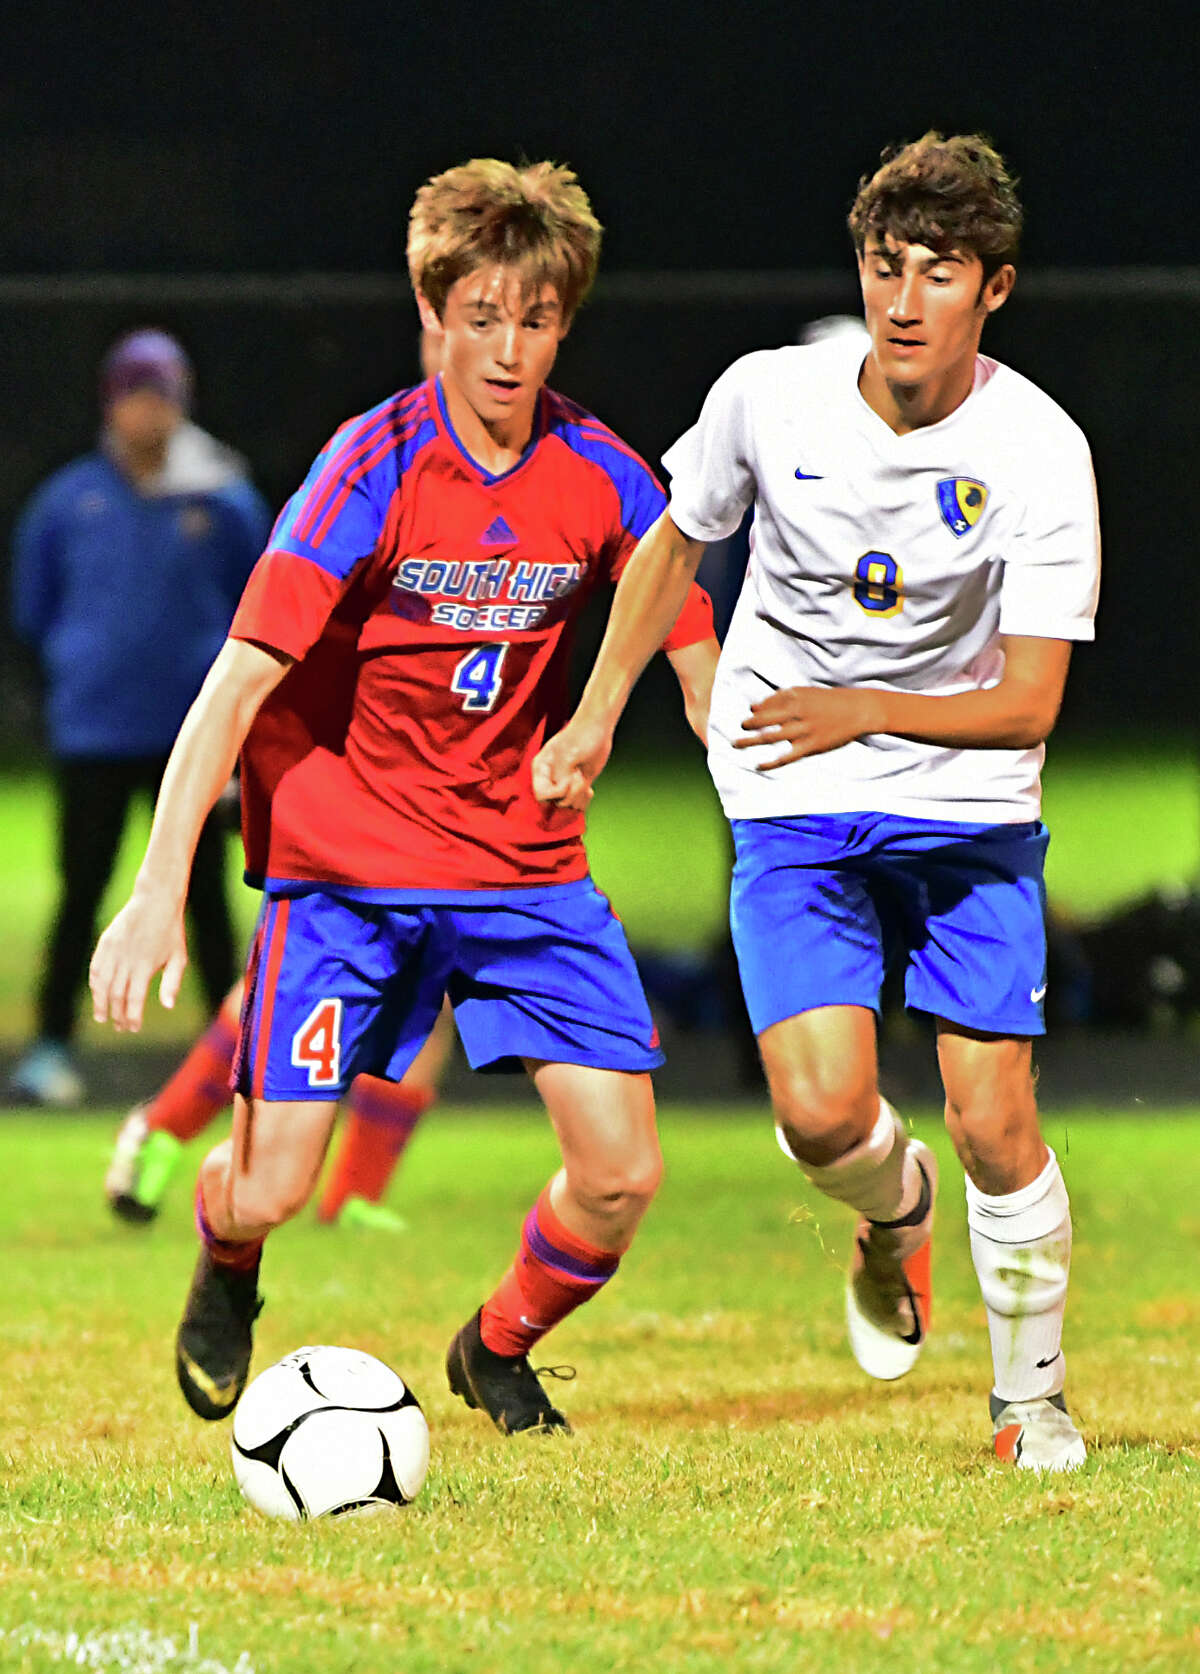 South Glens Falls' Bobby Bruschini, left, battles for the ball with Queensbury's Alejandro Garcia-Barrientos during a soccer game on Wednesday, Oct. 2, 2019 in South Glens Falls. This coming season won't happen until spring. (Lori Van Buren/Times Union)